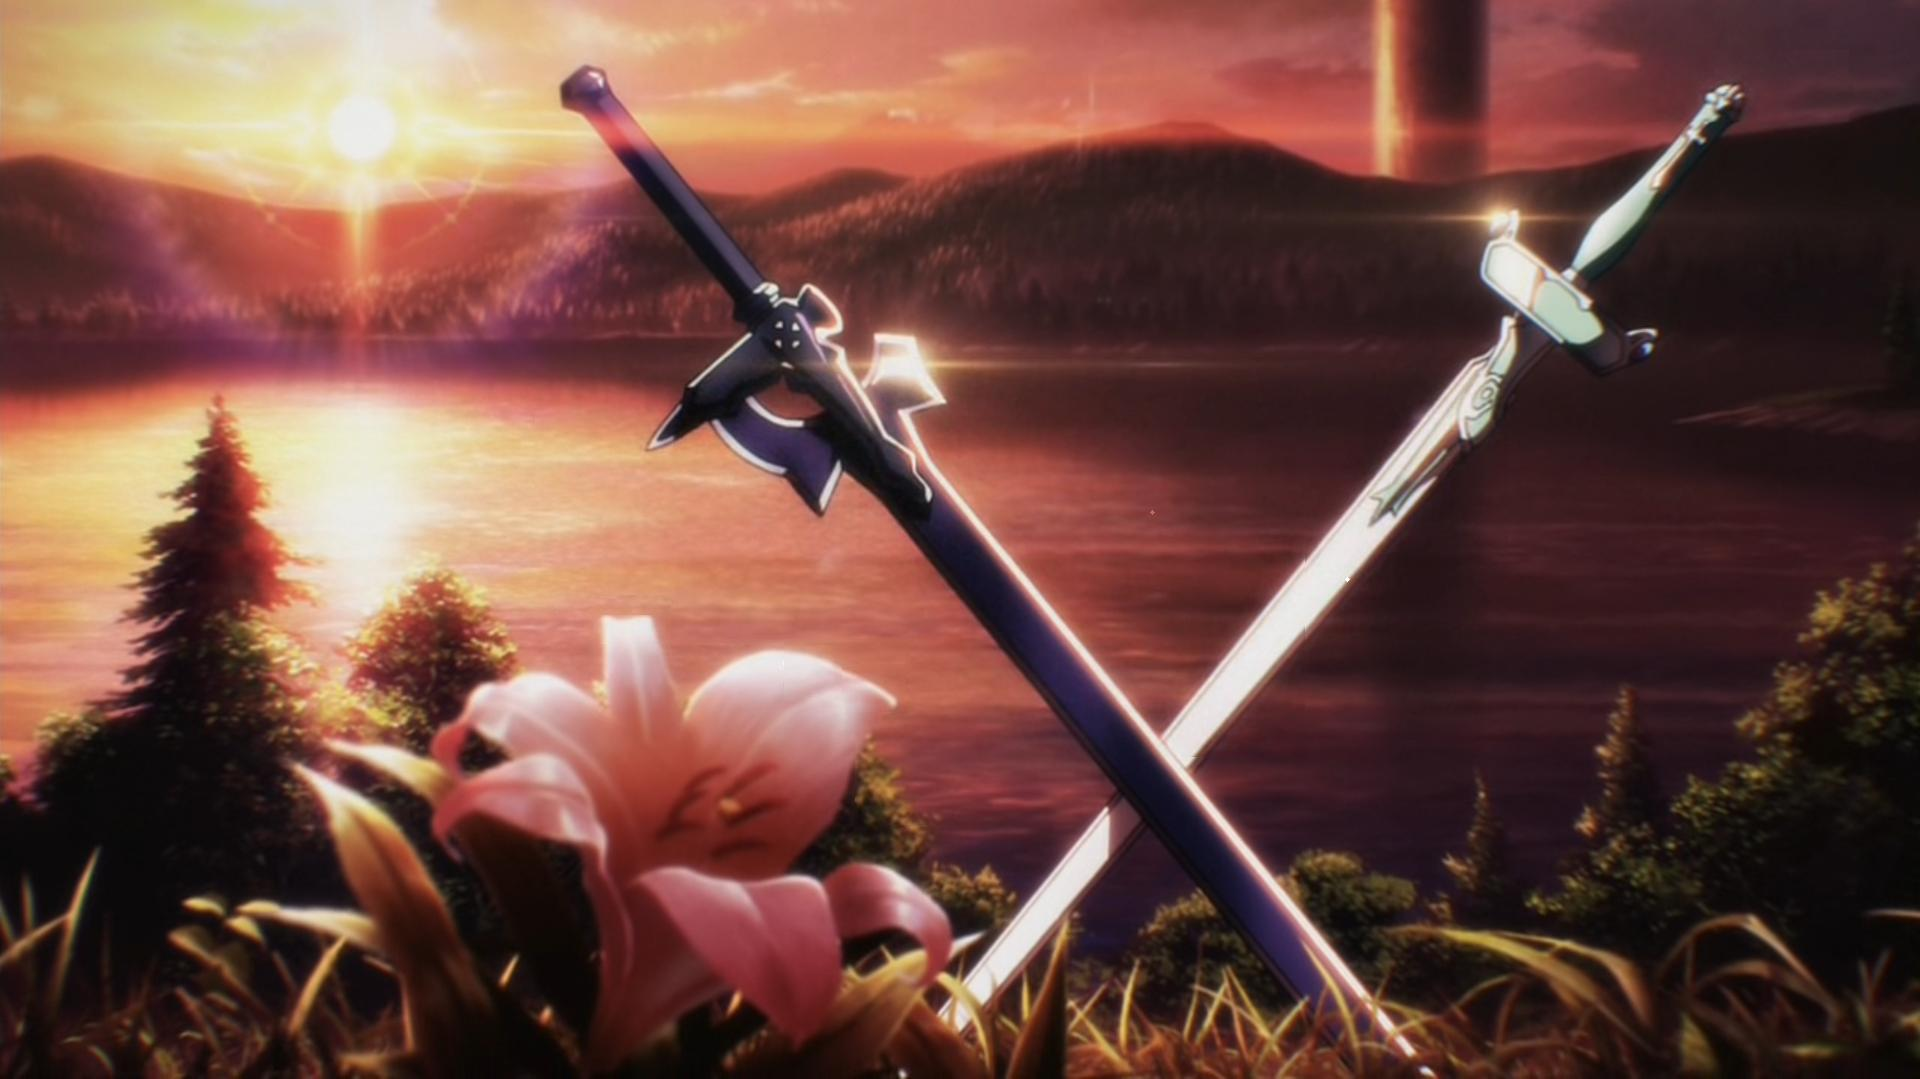 Sword Art Online Swords Wallpaper